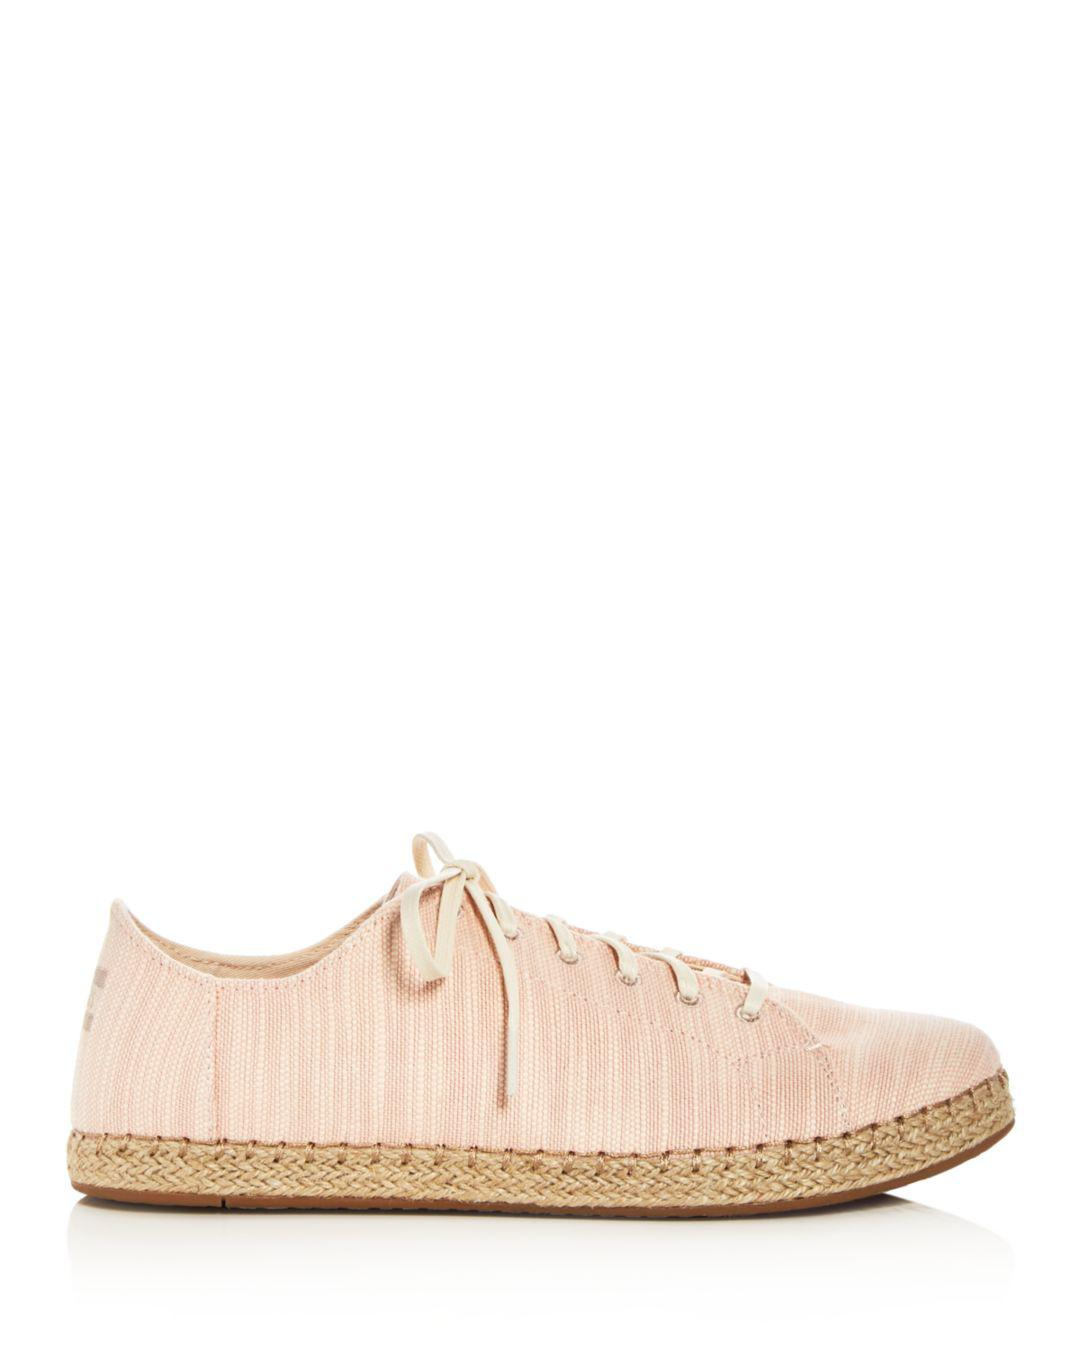 TOMS Women's Lena Slubby Cotton Lace Up Espadrille Sneakers in Pink